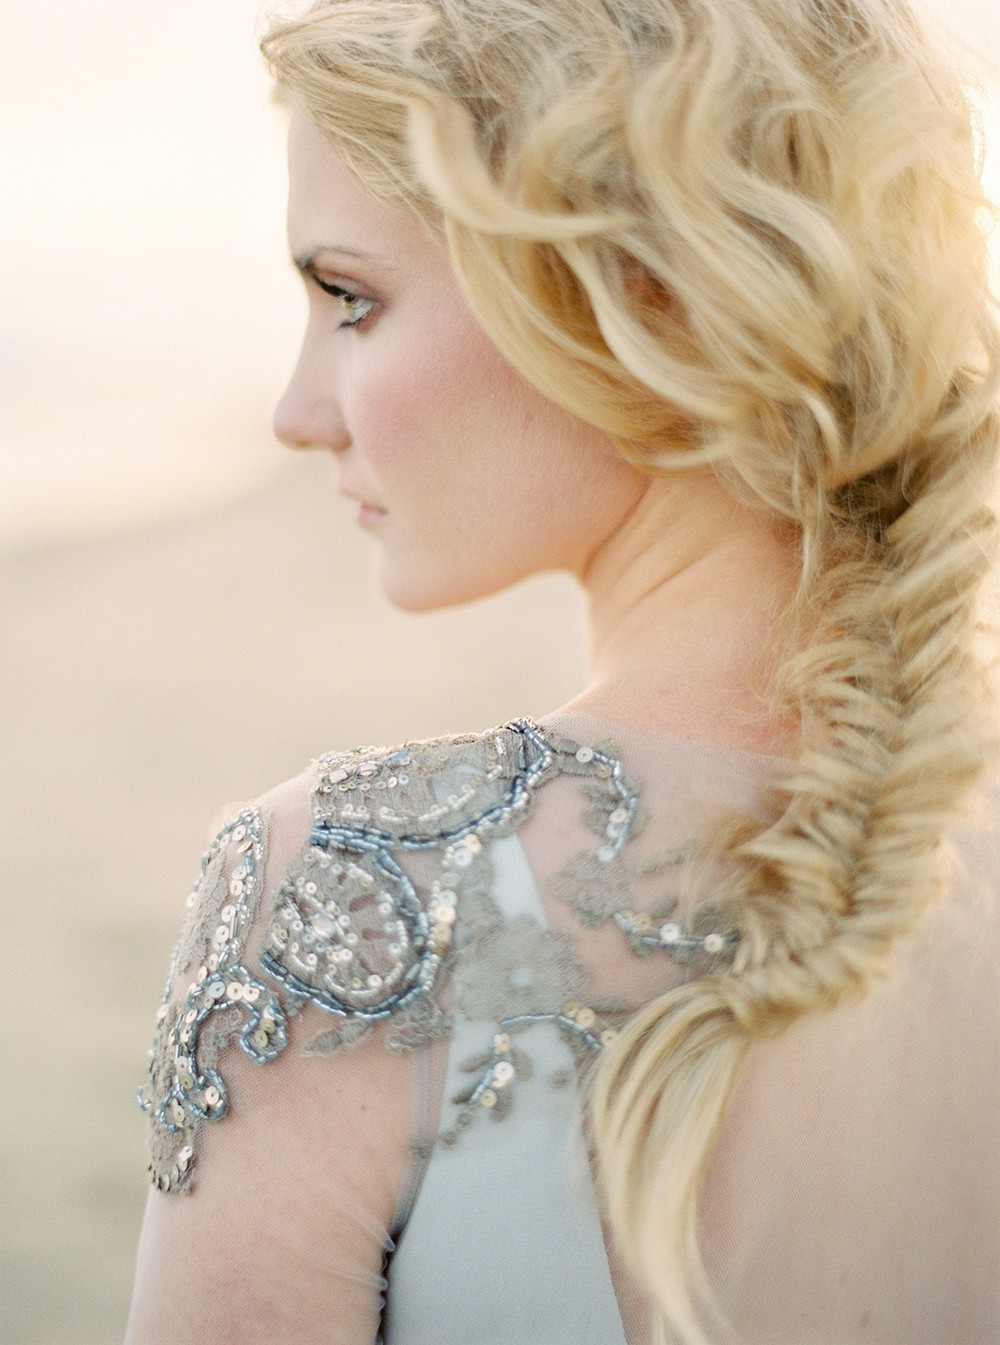 Coastal Wedding in an Embellished Gown